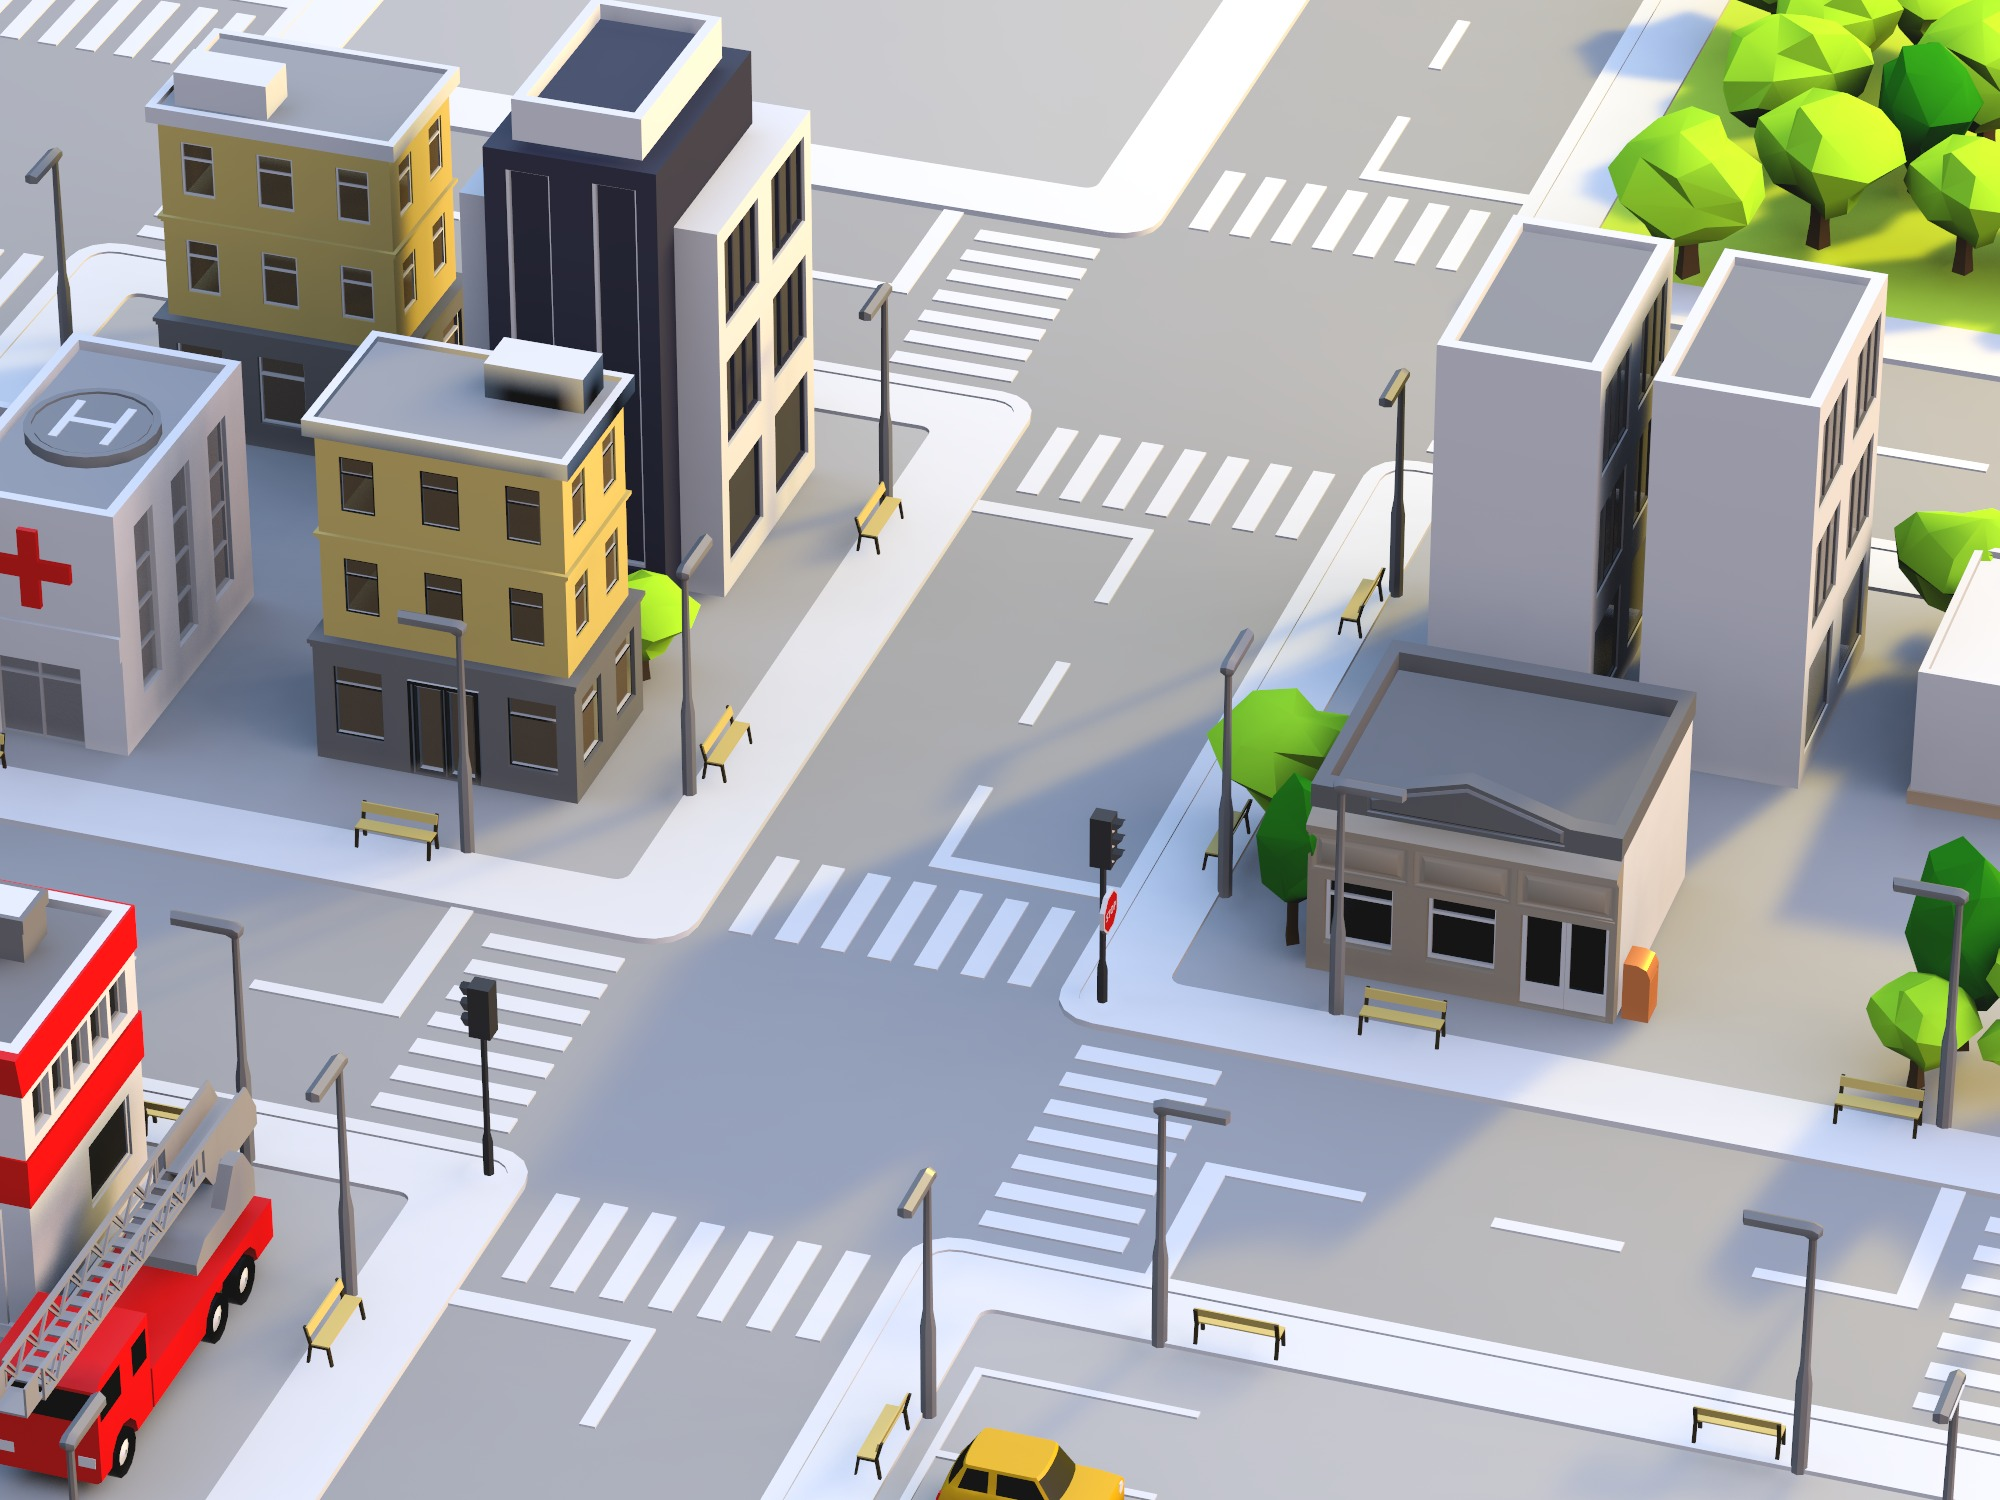 Build a city - drag and drop objects (copy) - 3D design by cyphergamezbusiness on Nov 17, 2018